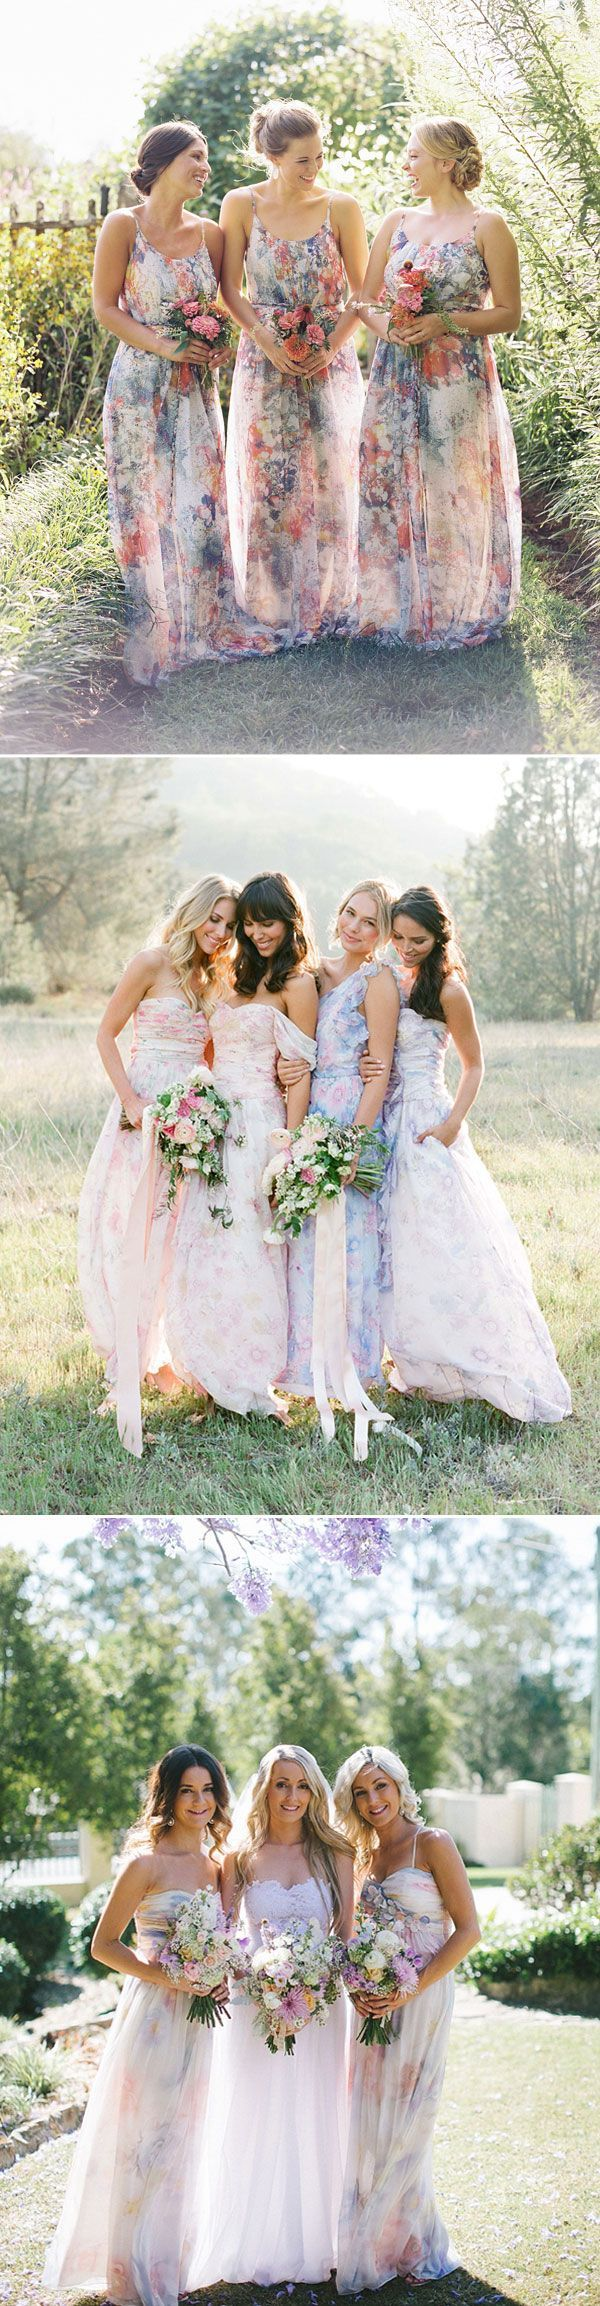 Top 6 Bridesmaid Dress Trends for Fall Wedding 2015 | http://www.tulleandchantilly.com/blog/top-6-bridesmaid-dress-trends-for-fall-wedding-2015/